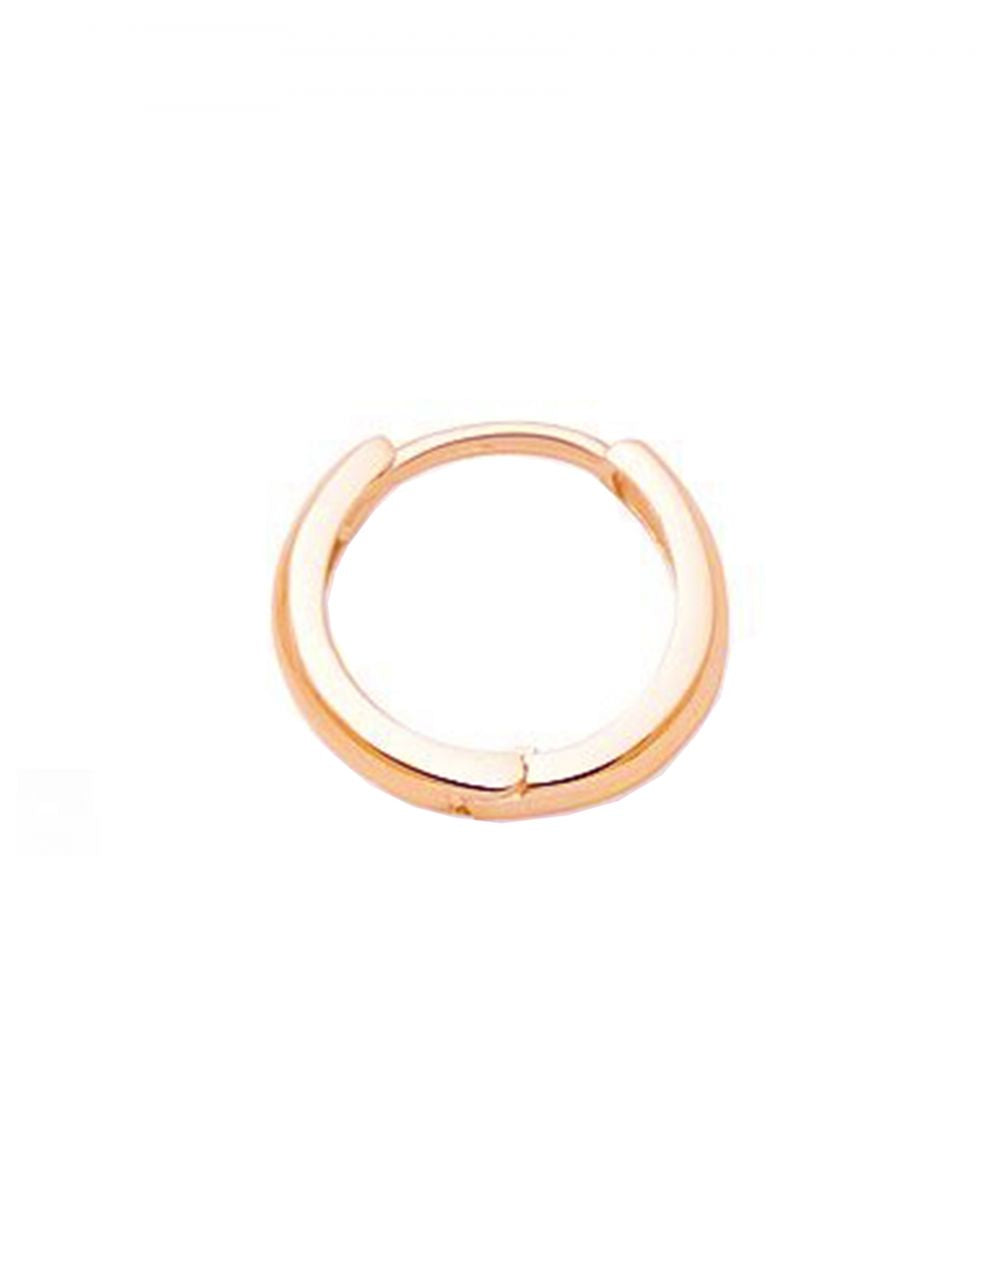 Mini Gold Hoop Piercing<br /><i><small>14K Rose Gold</small></i><br /> - Eddera